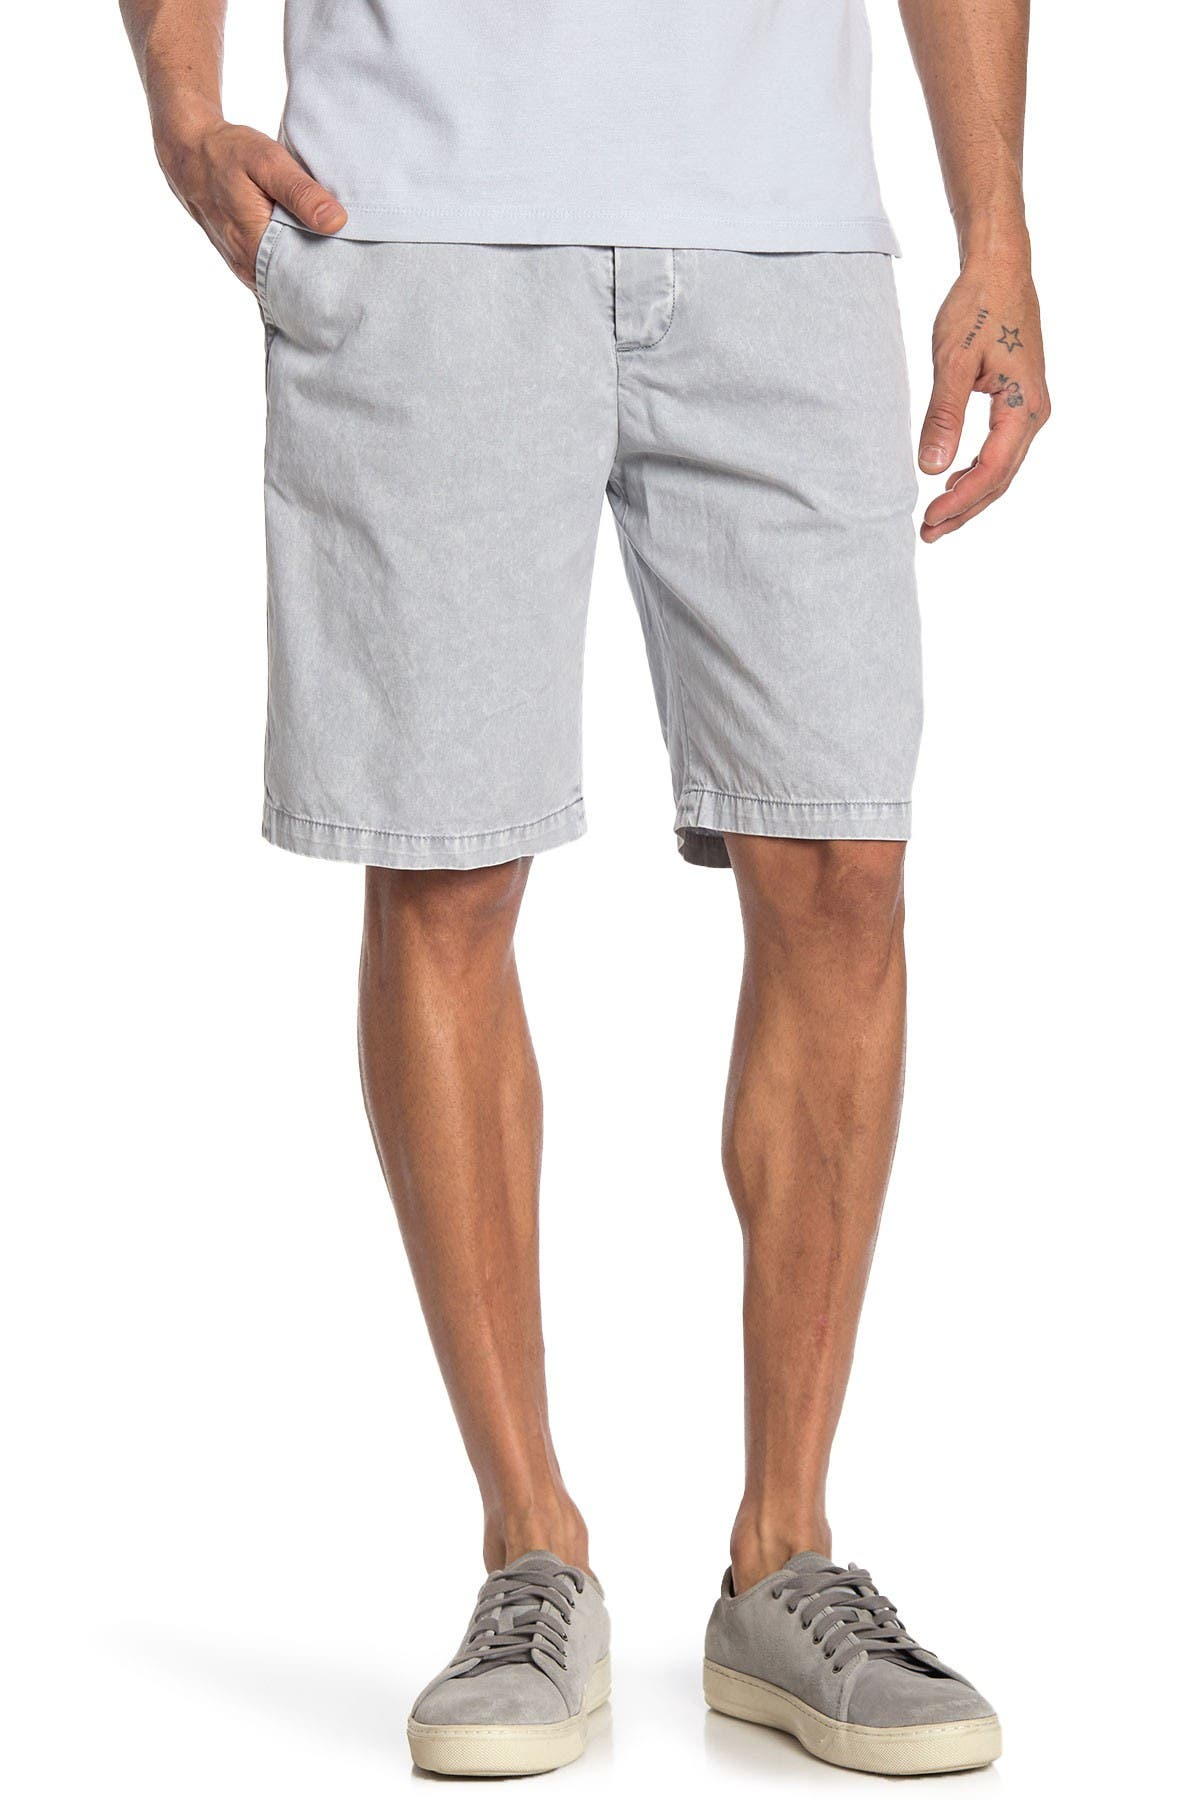 Image of ALLSAINTS Bowfell Twill Shorts